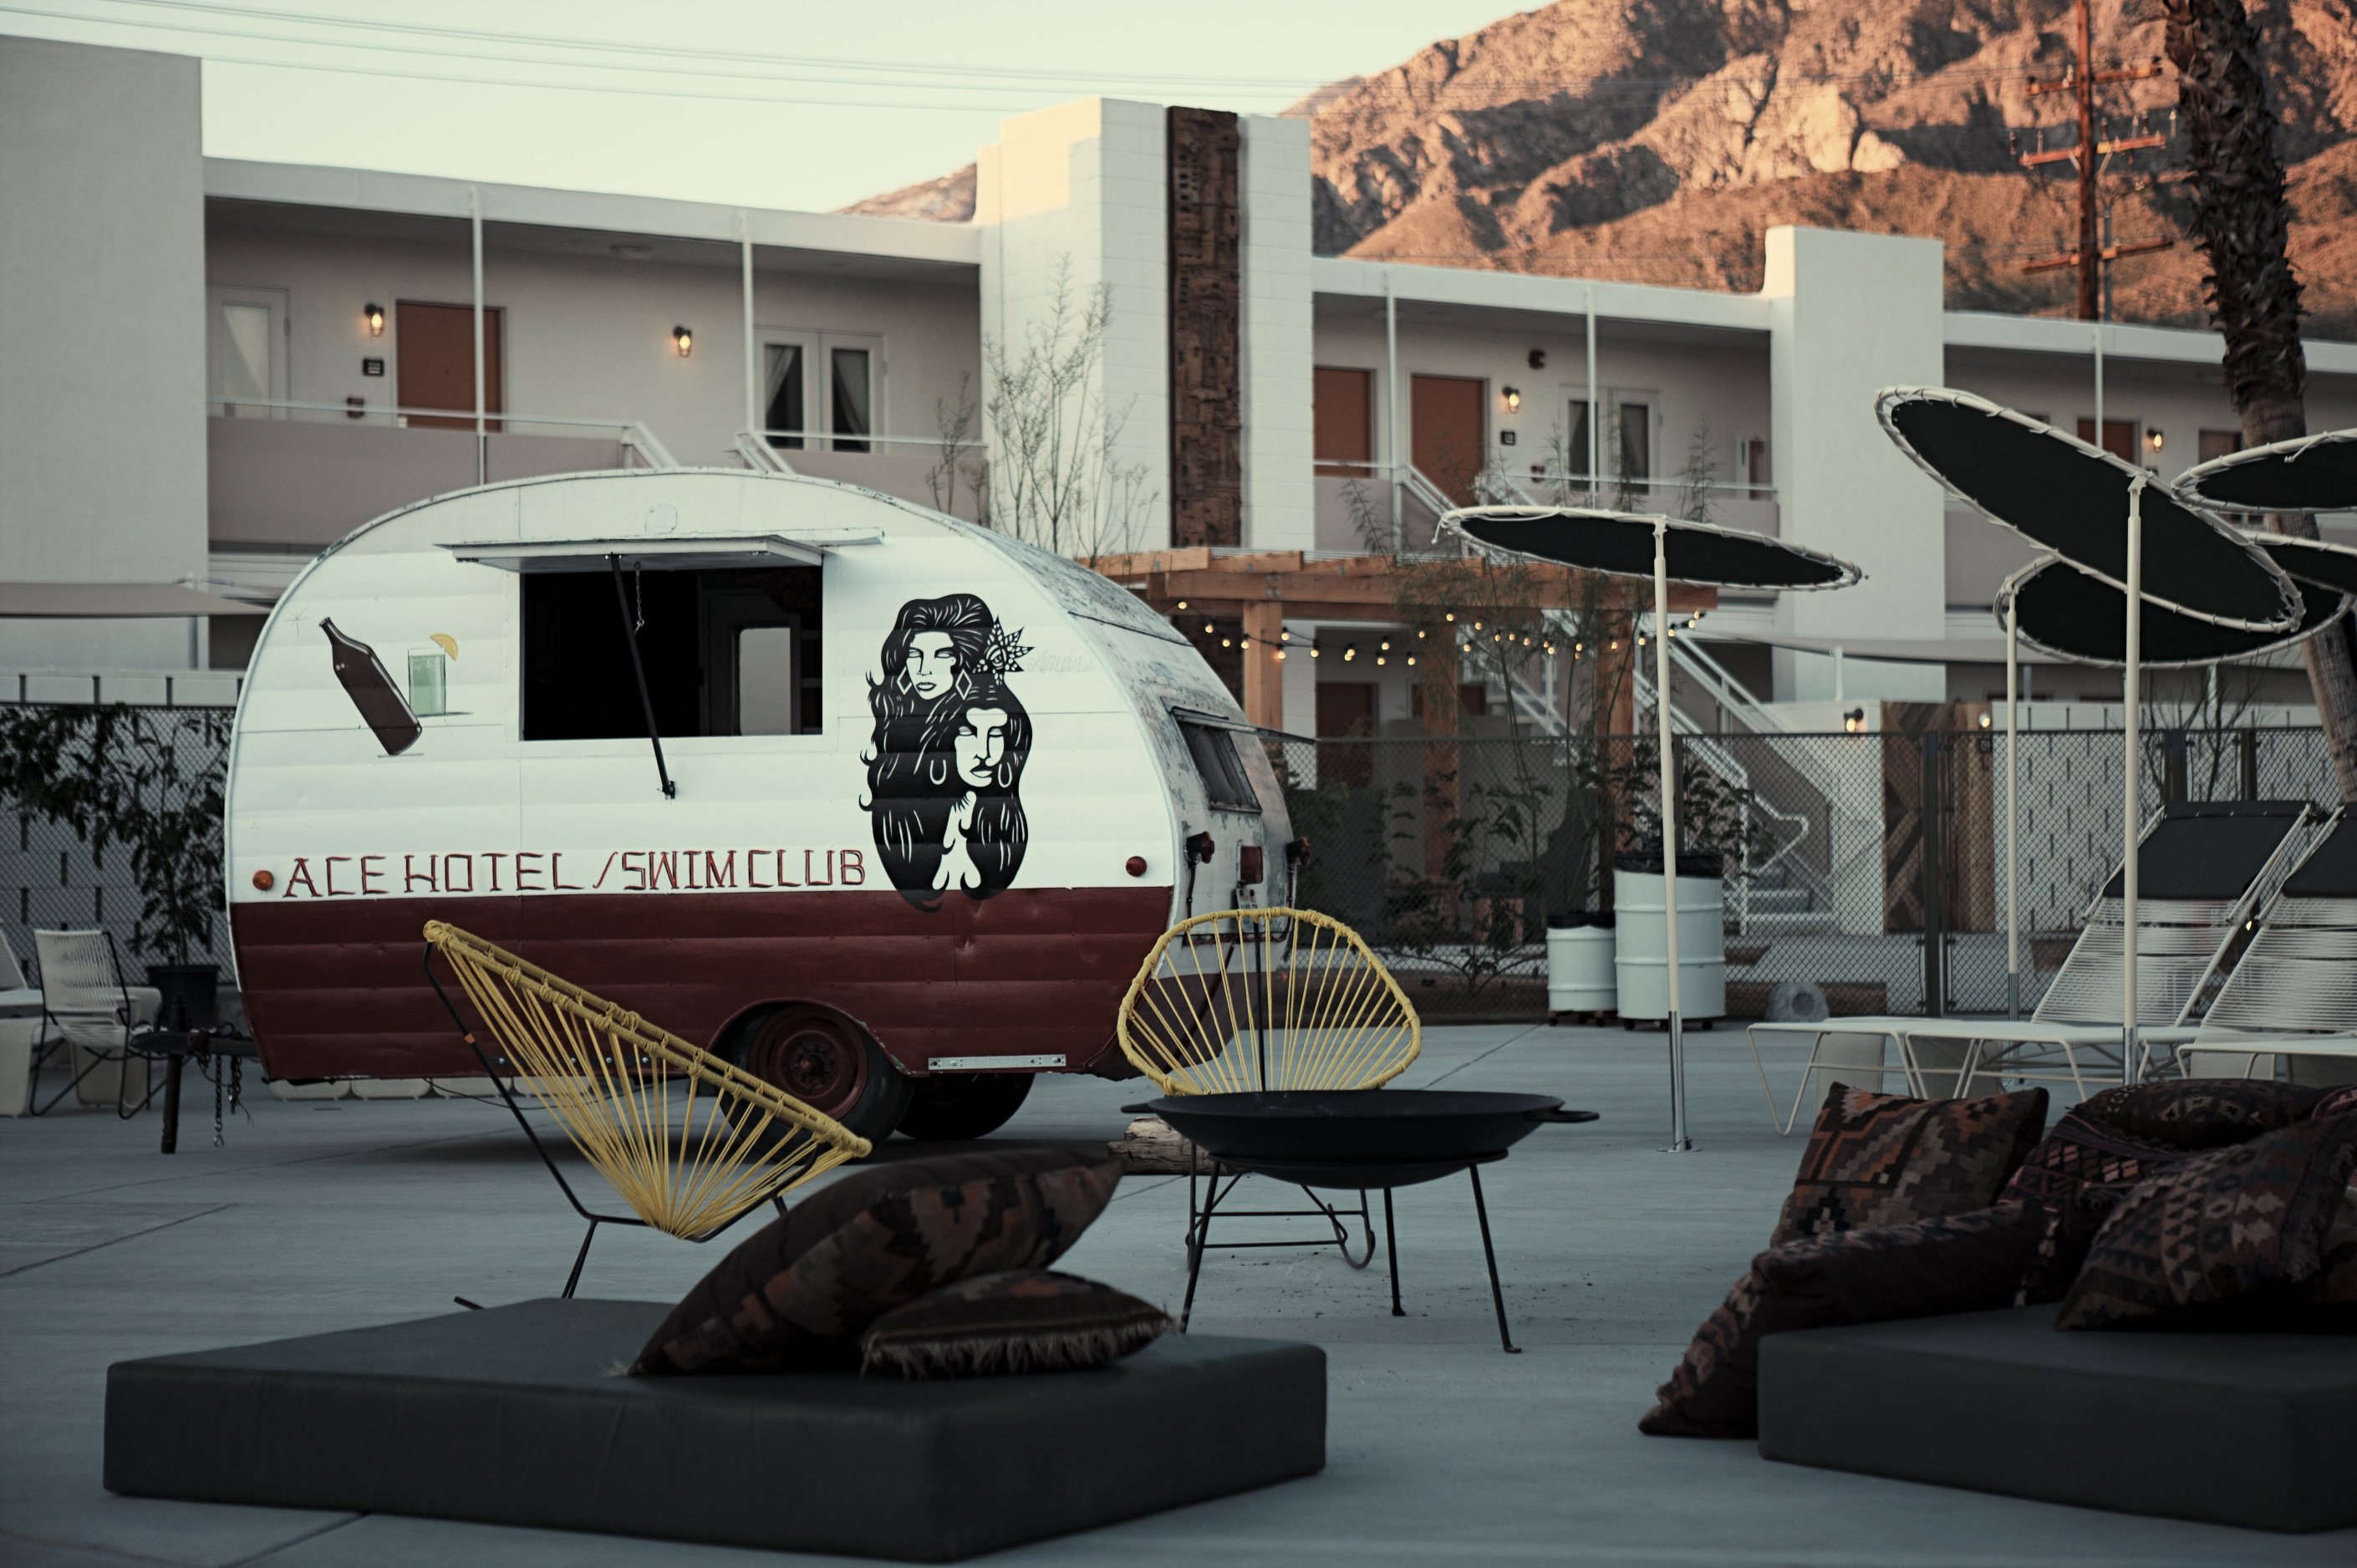 Ace hotel palm springs substance of style for Ace hotel decor